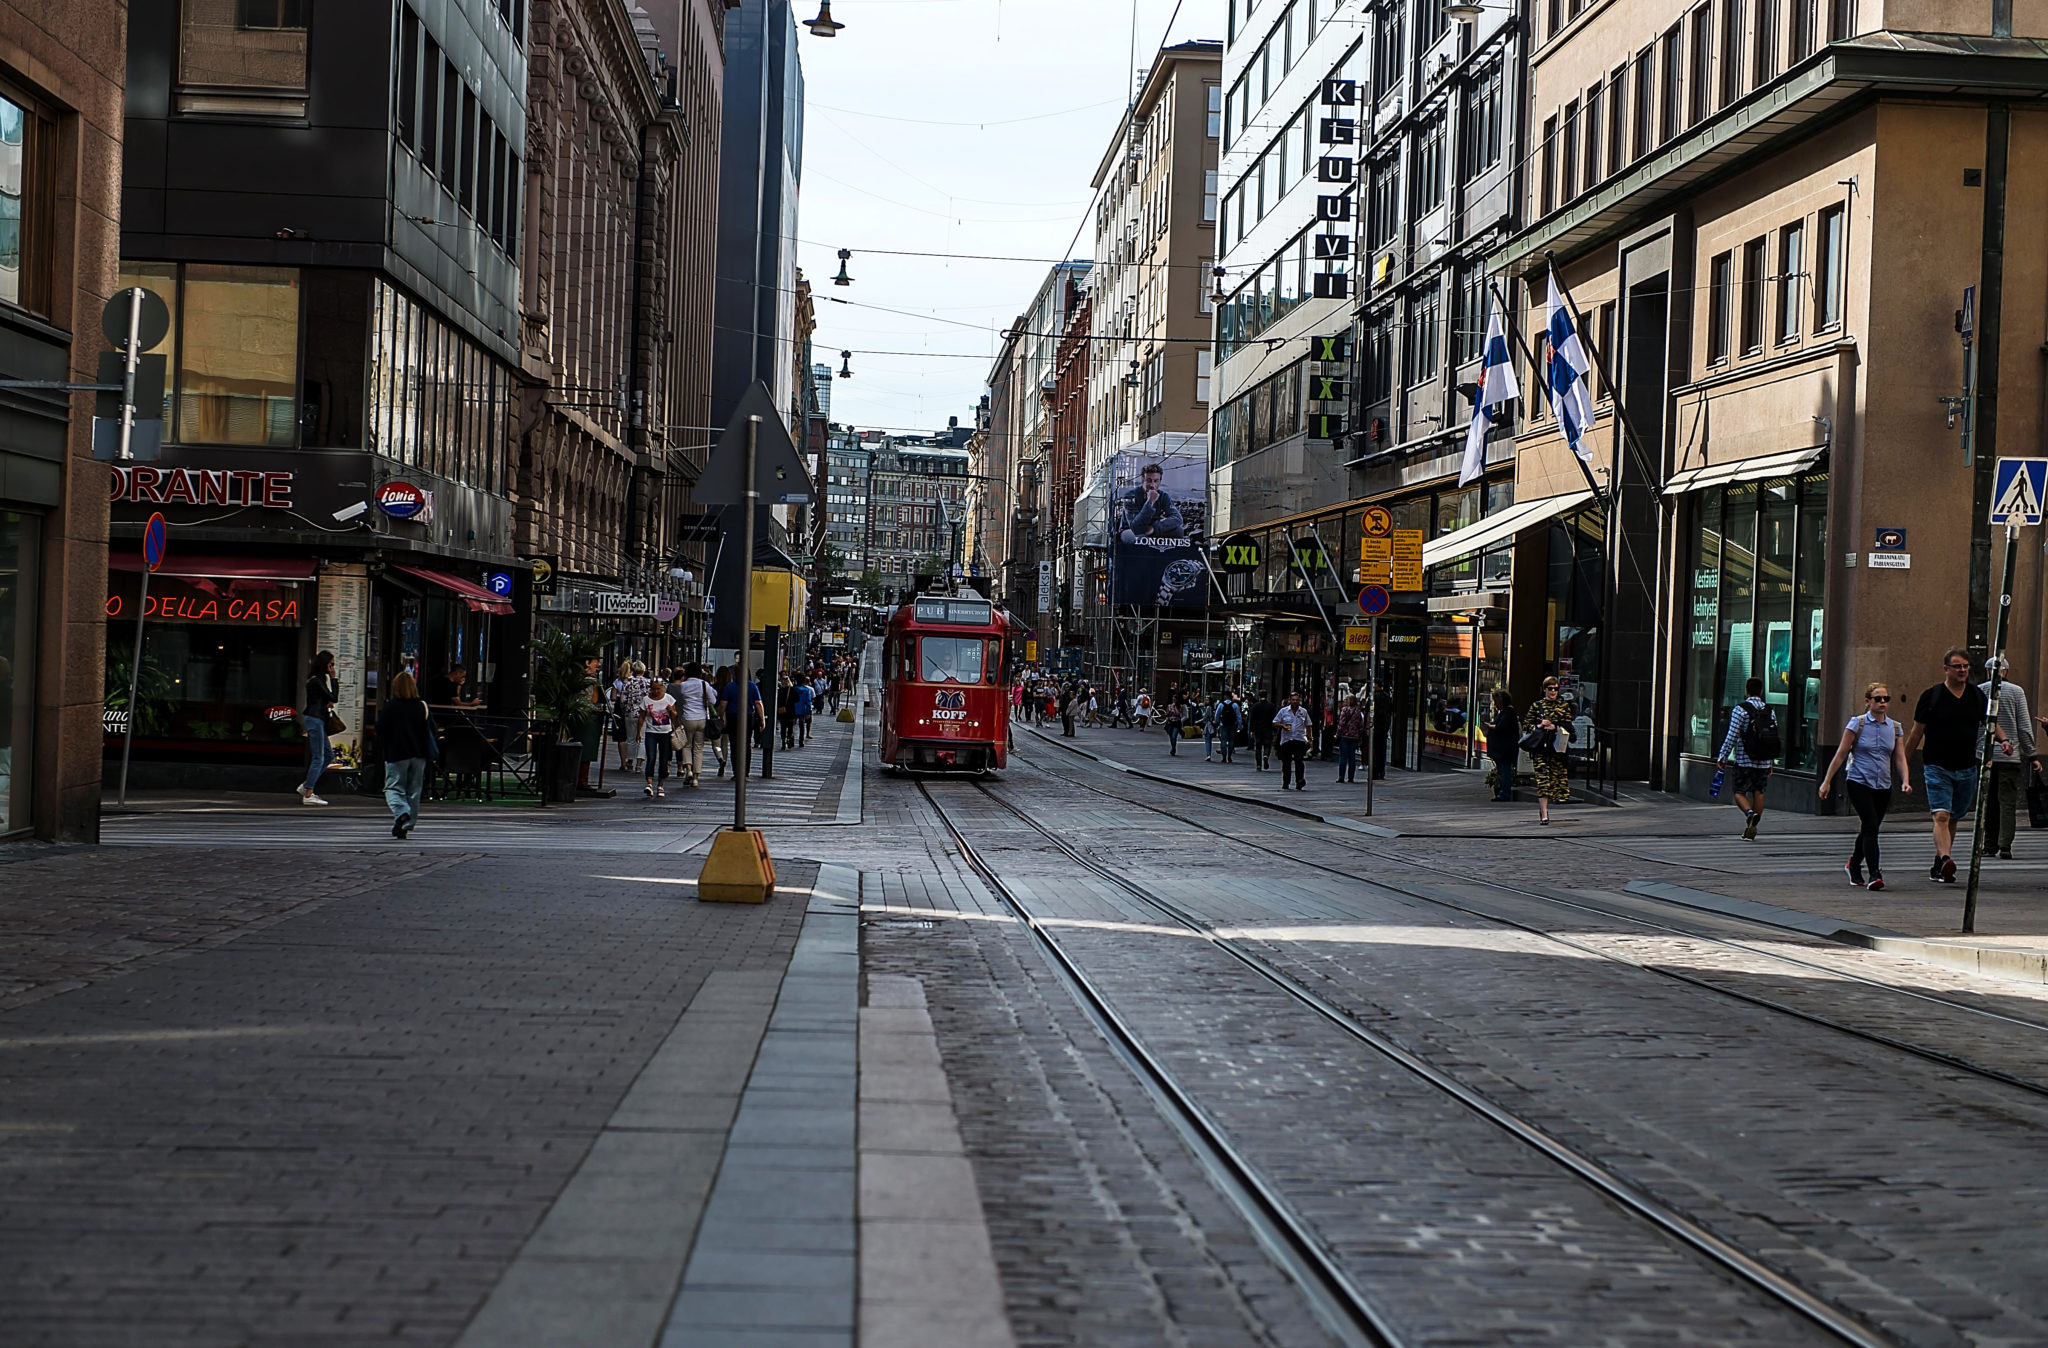 Street wiev with red Tram – Punainen ratikka